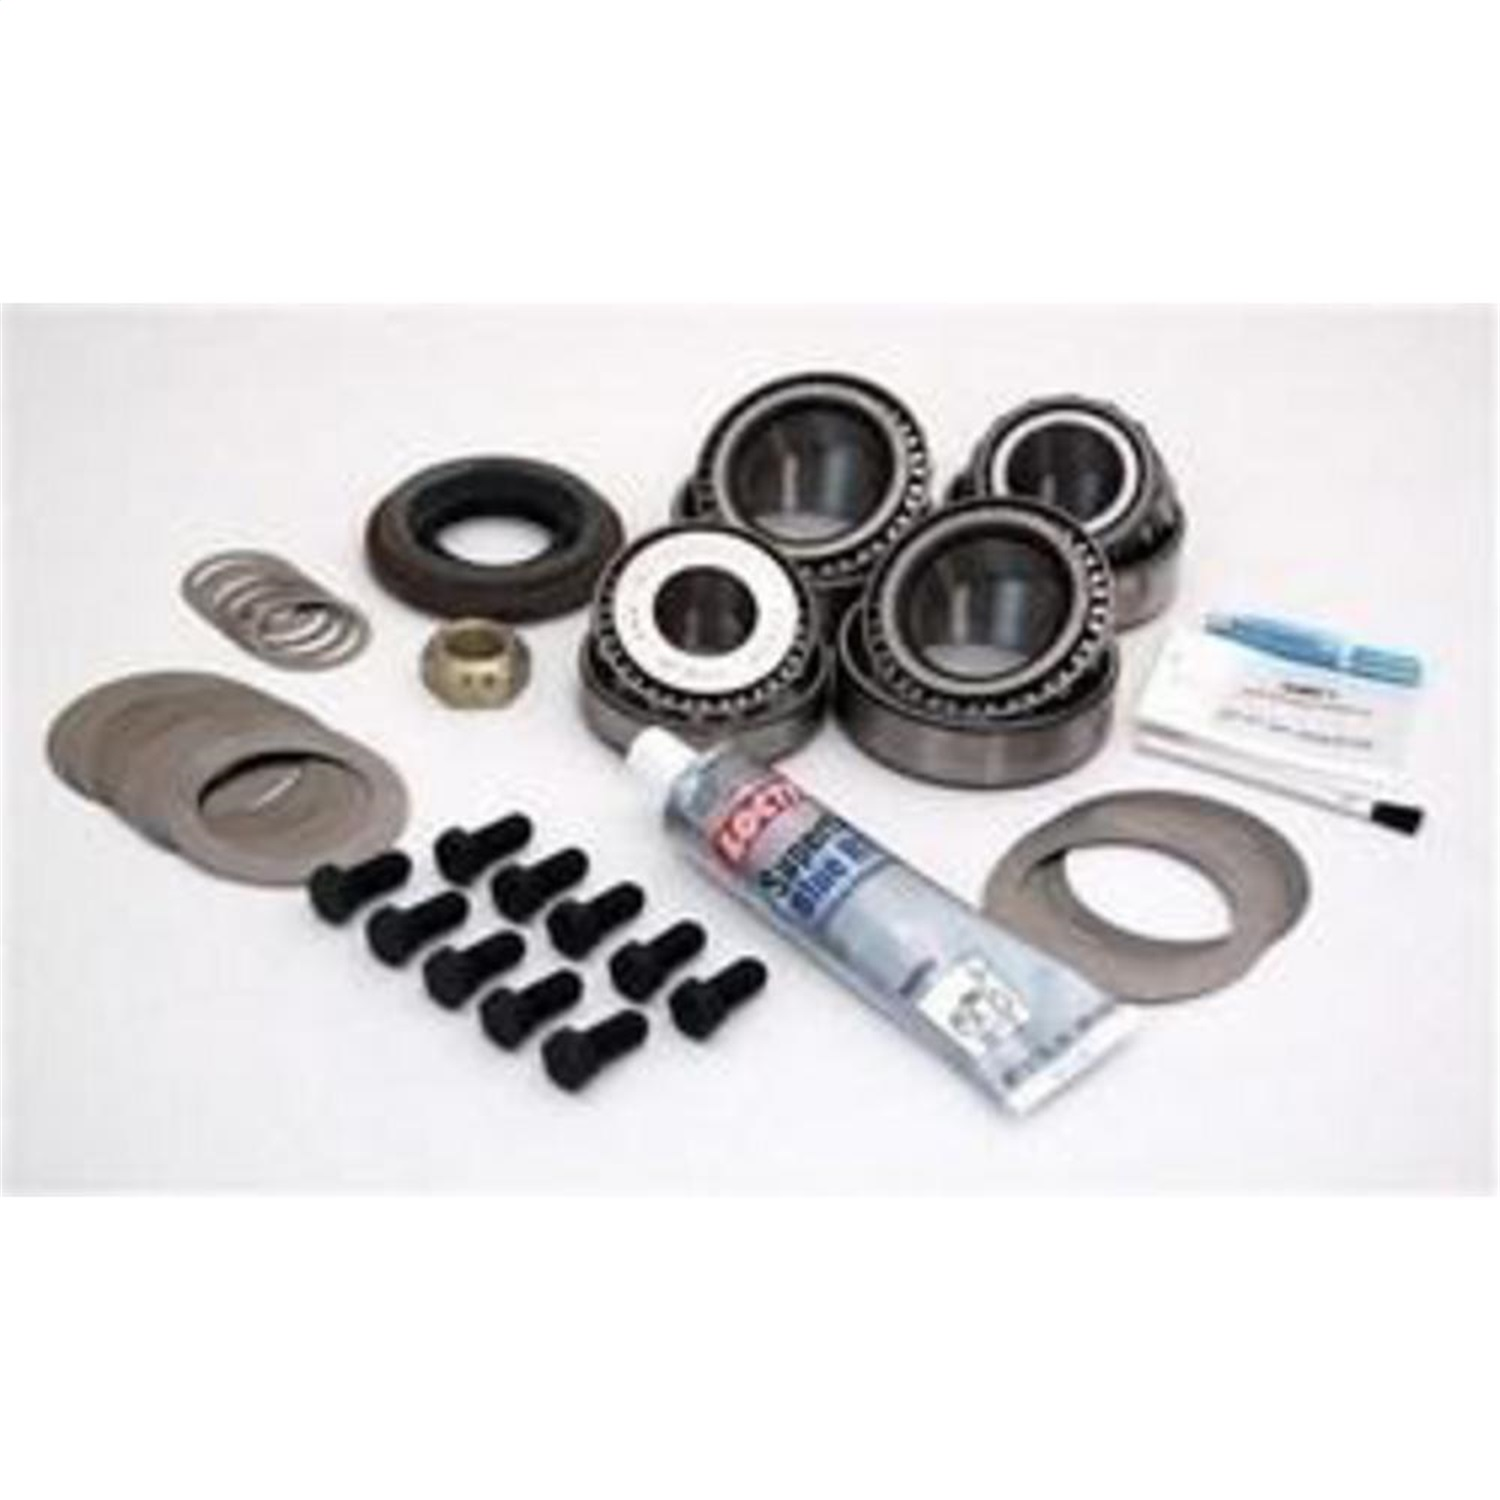 G2 Axle and Gear 35-2037 Ring And Pinion Master Install Kit